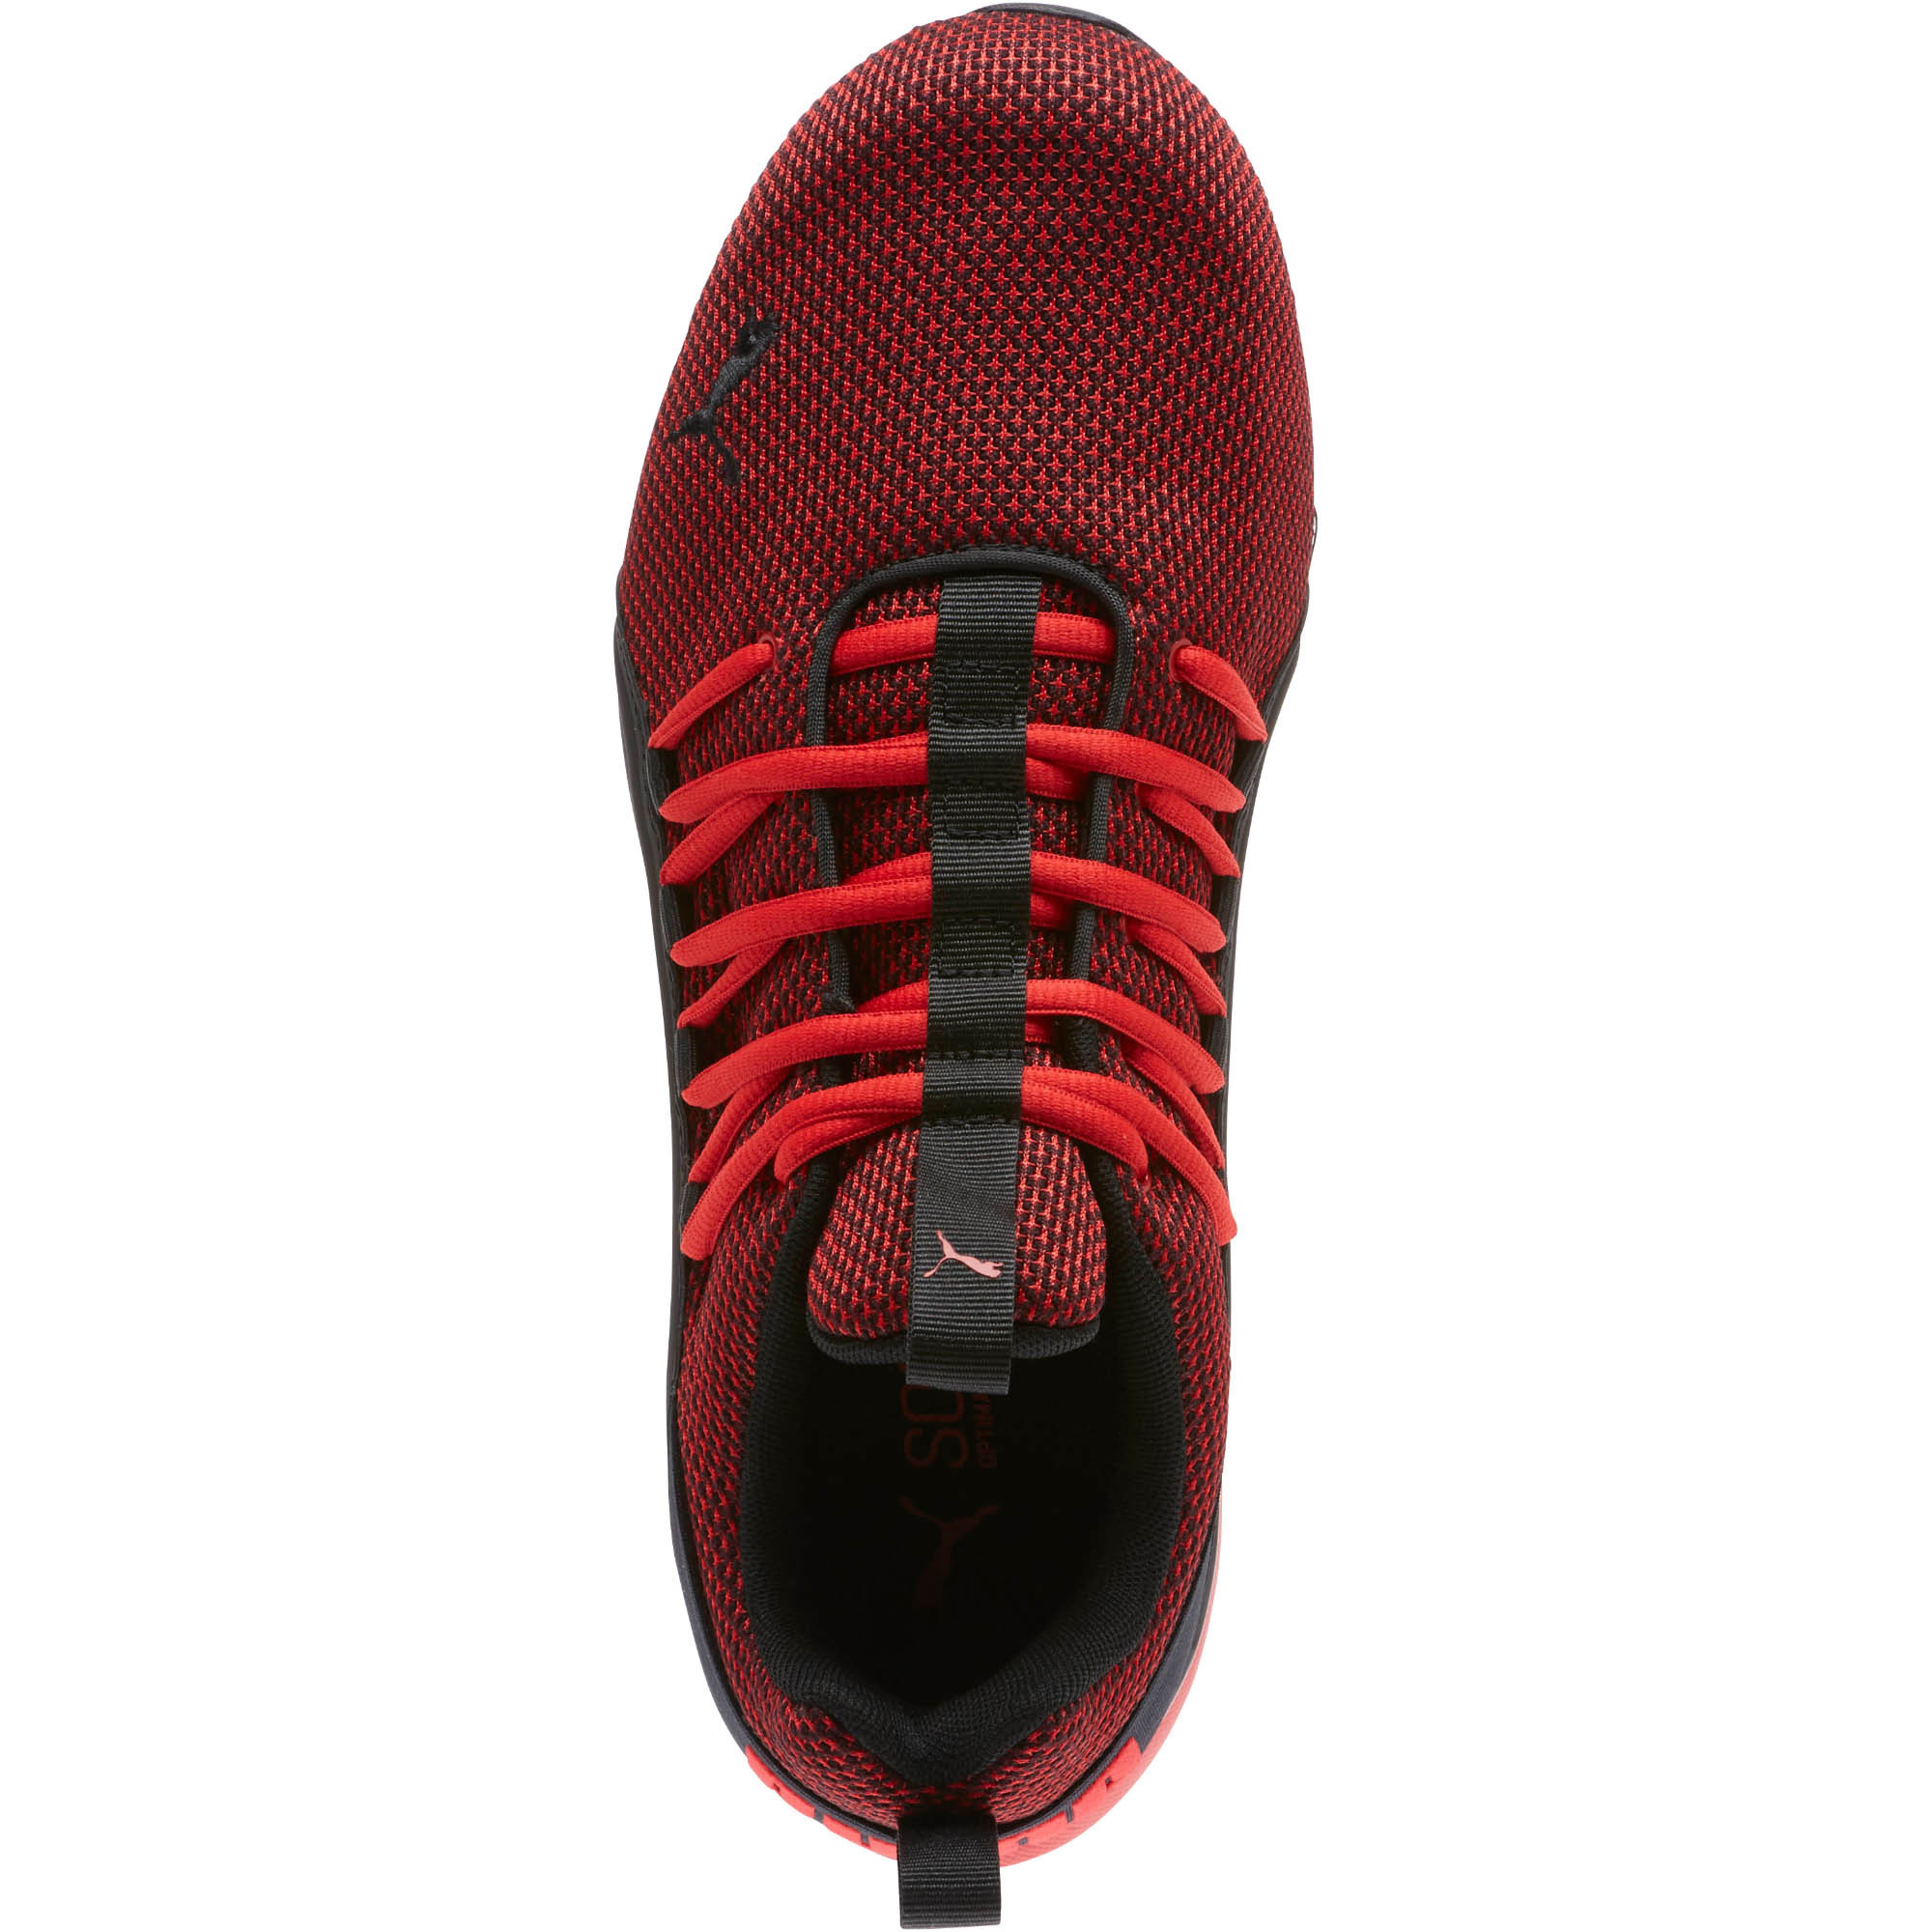 PUMA-Men-039-s-Axelion-Mesh-Wide-Training-Shoes thumbnail 6